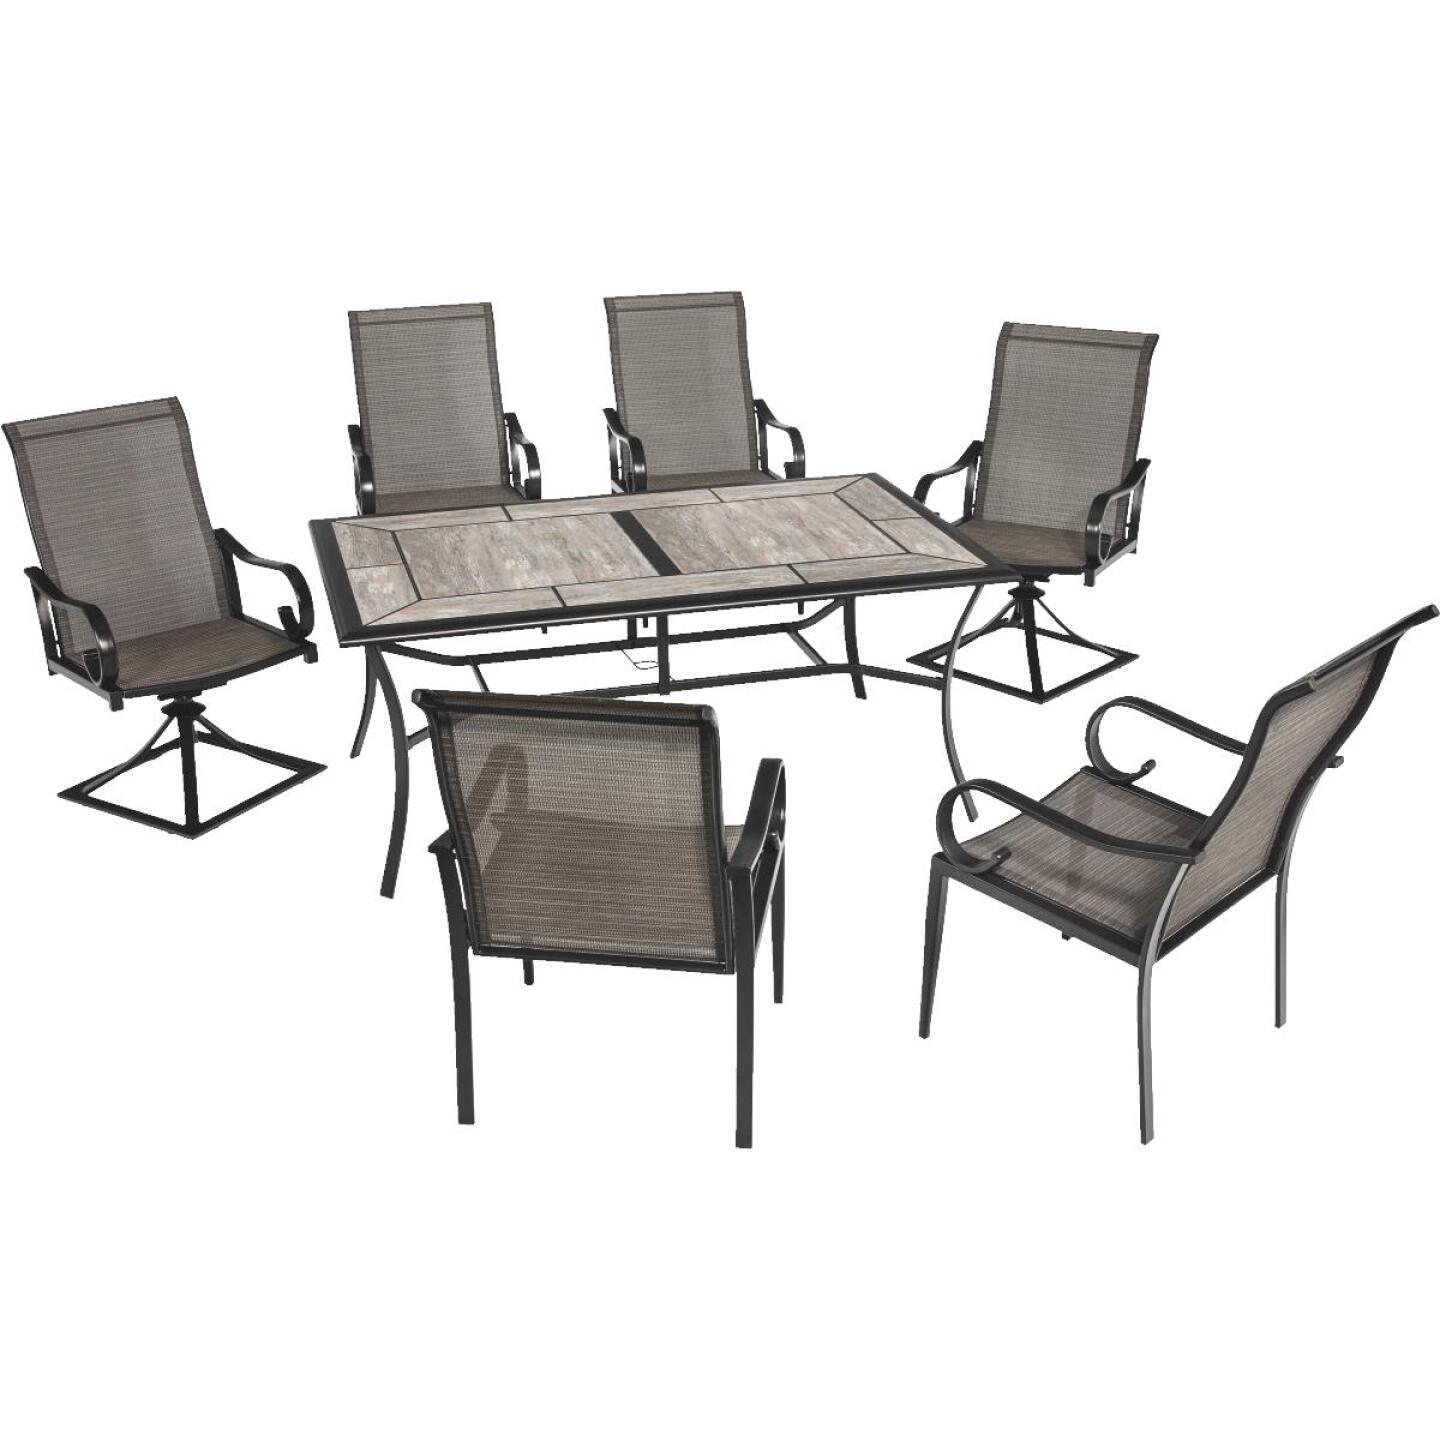 Outdoor Expressions Berkshire 7-Piece Dining Set Image 352